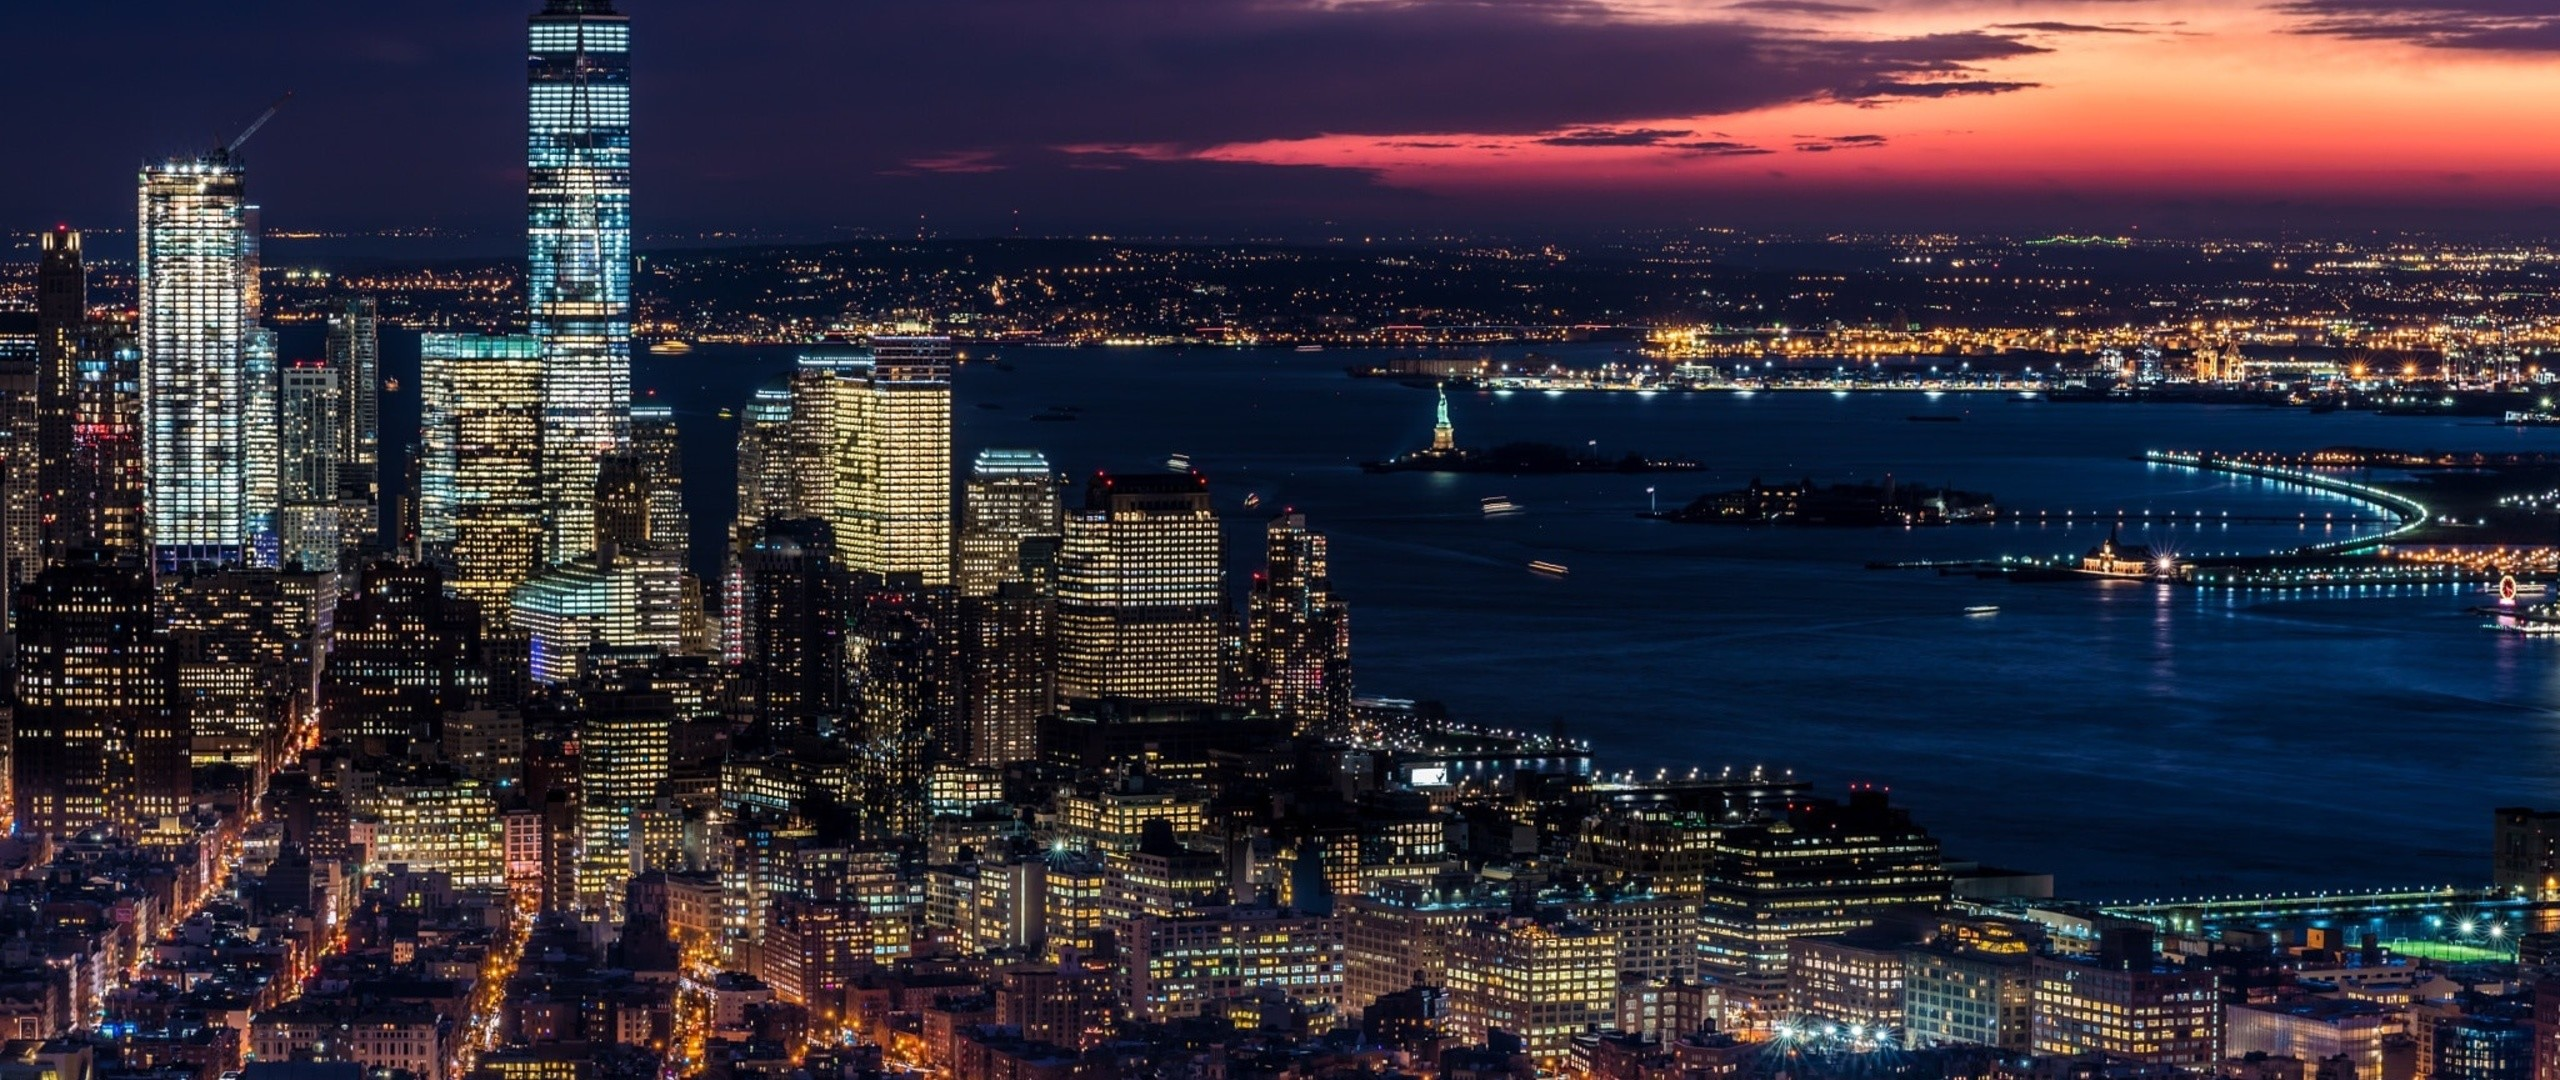 Res: 2560x1080, new-york-hd-is.jpg